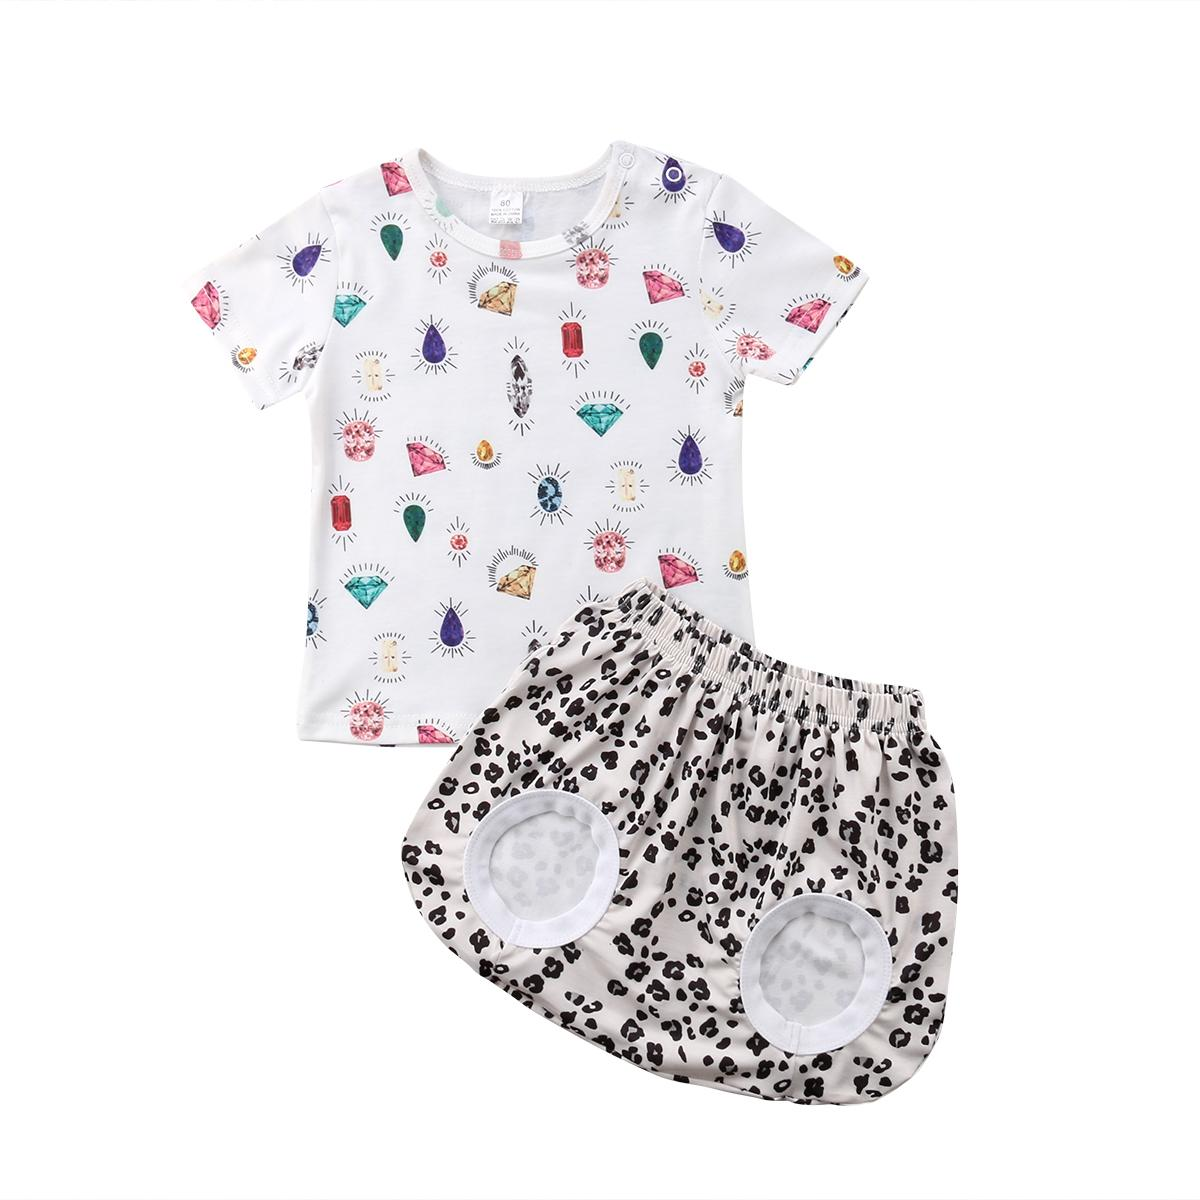 2019 gemstone baby girls t shirt top pants shorts outfits newborn kids clothes set from coolhi 39 6 dhgate com